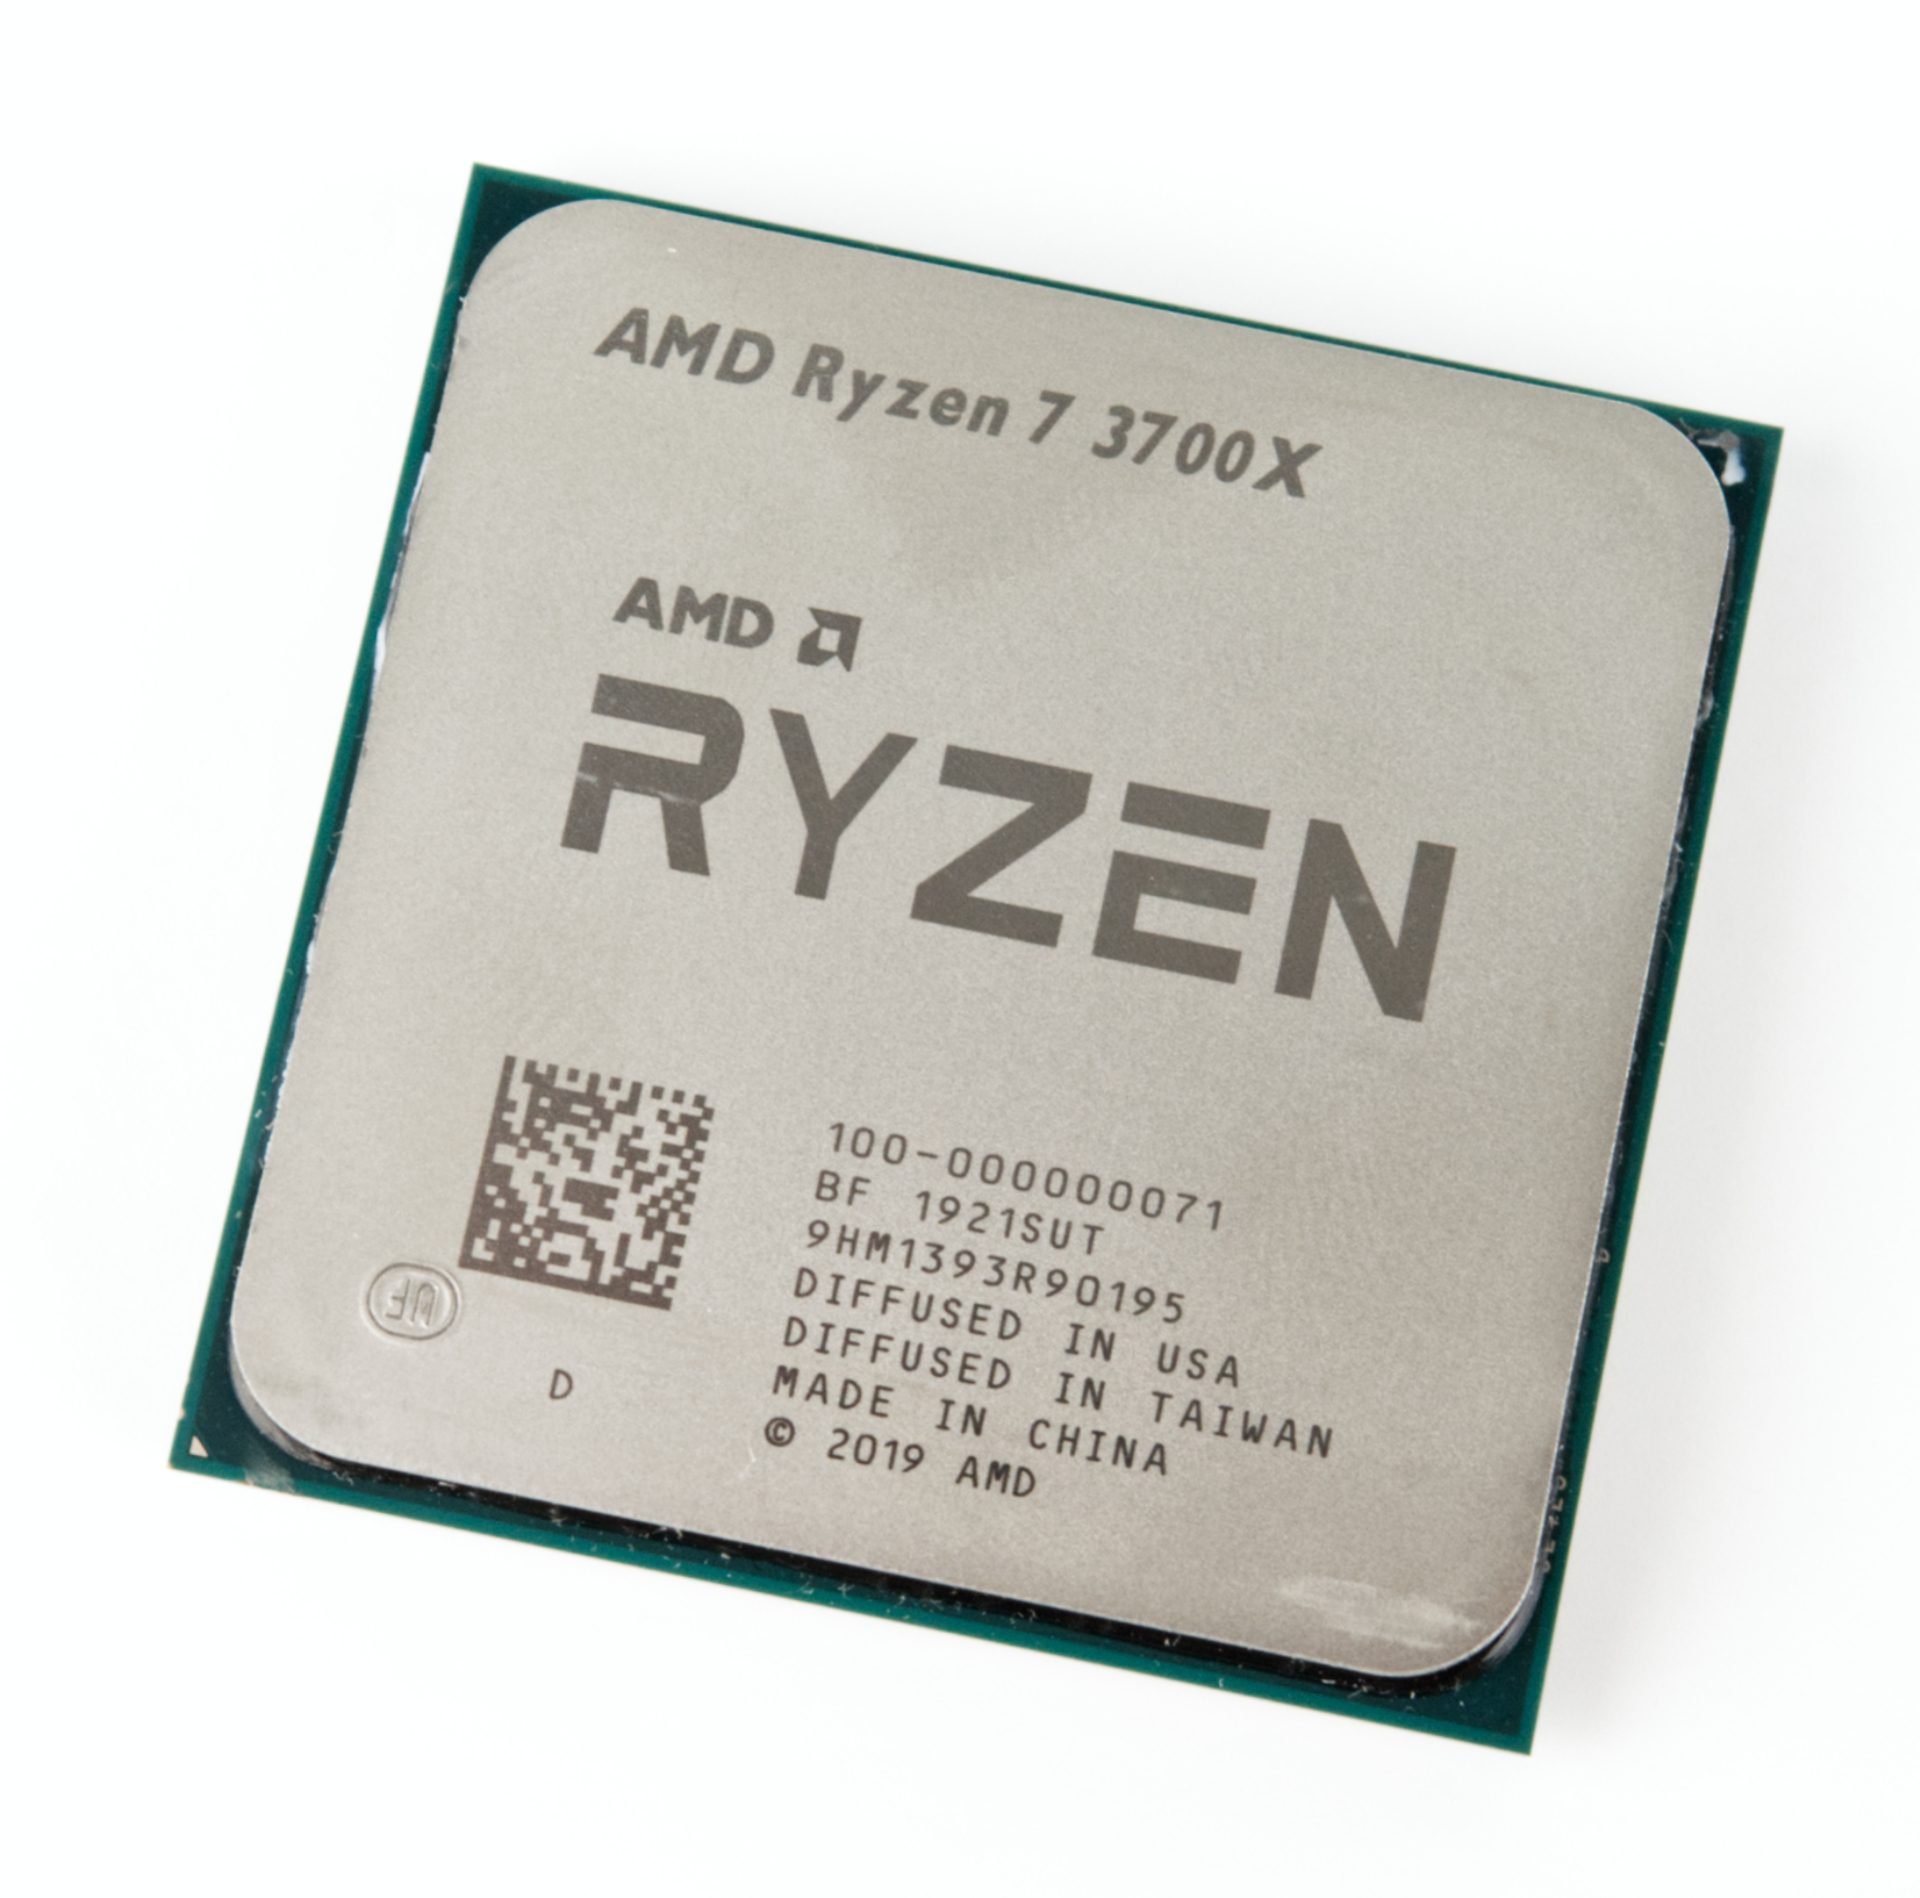 AMD Ryzen 7 3700X Desktop CPU Review: A frugal 8 core and 16 thread